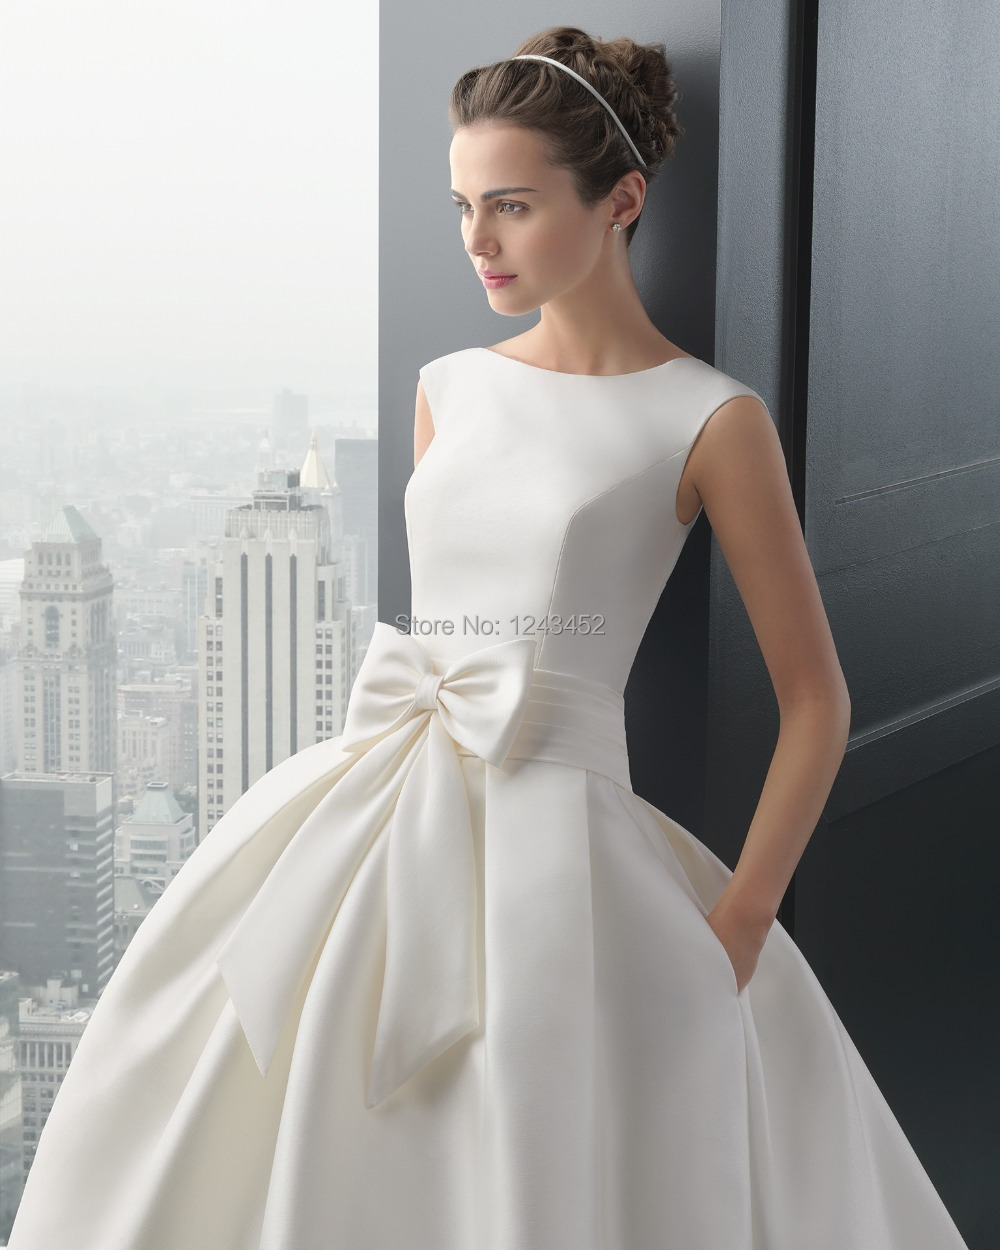 Free Shipping DHL White Low Back Bow Ball Gown Wedding Bridal Dresses Satin  Salomon Z2584 In Wedding Dresses From Weddings U0026 Events On Aliexpress.com  ...